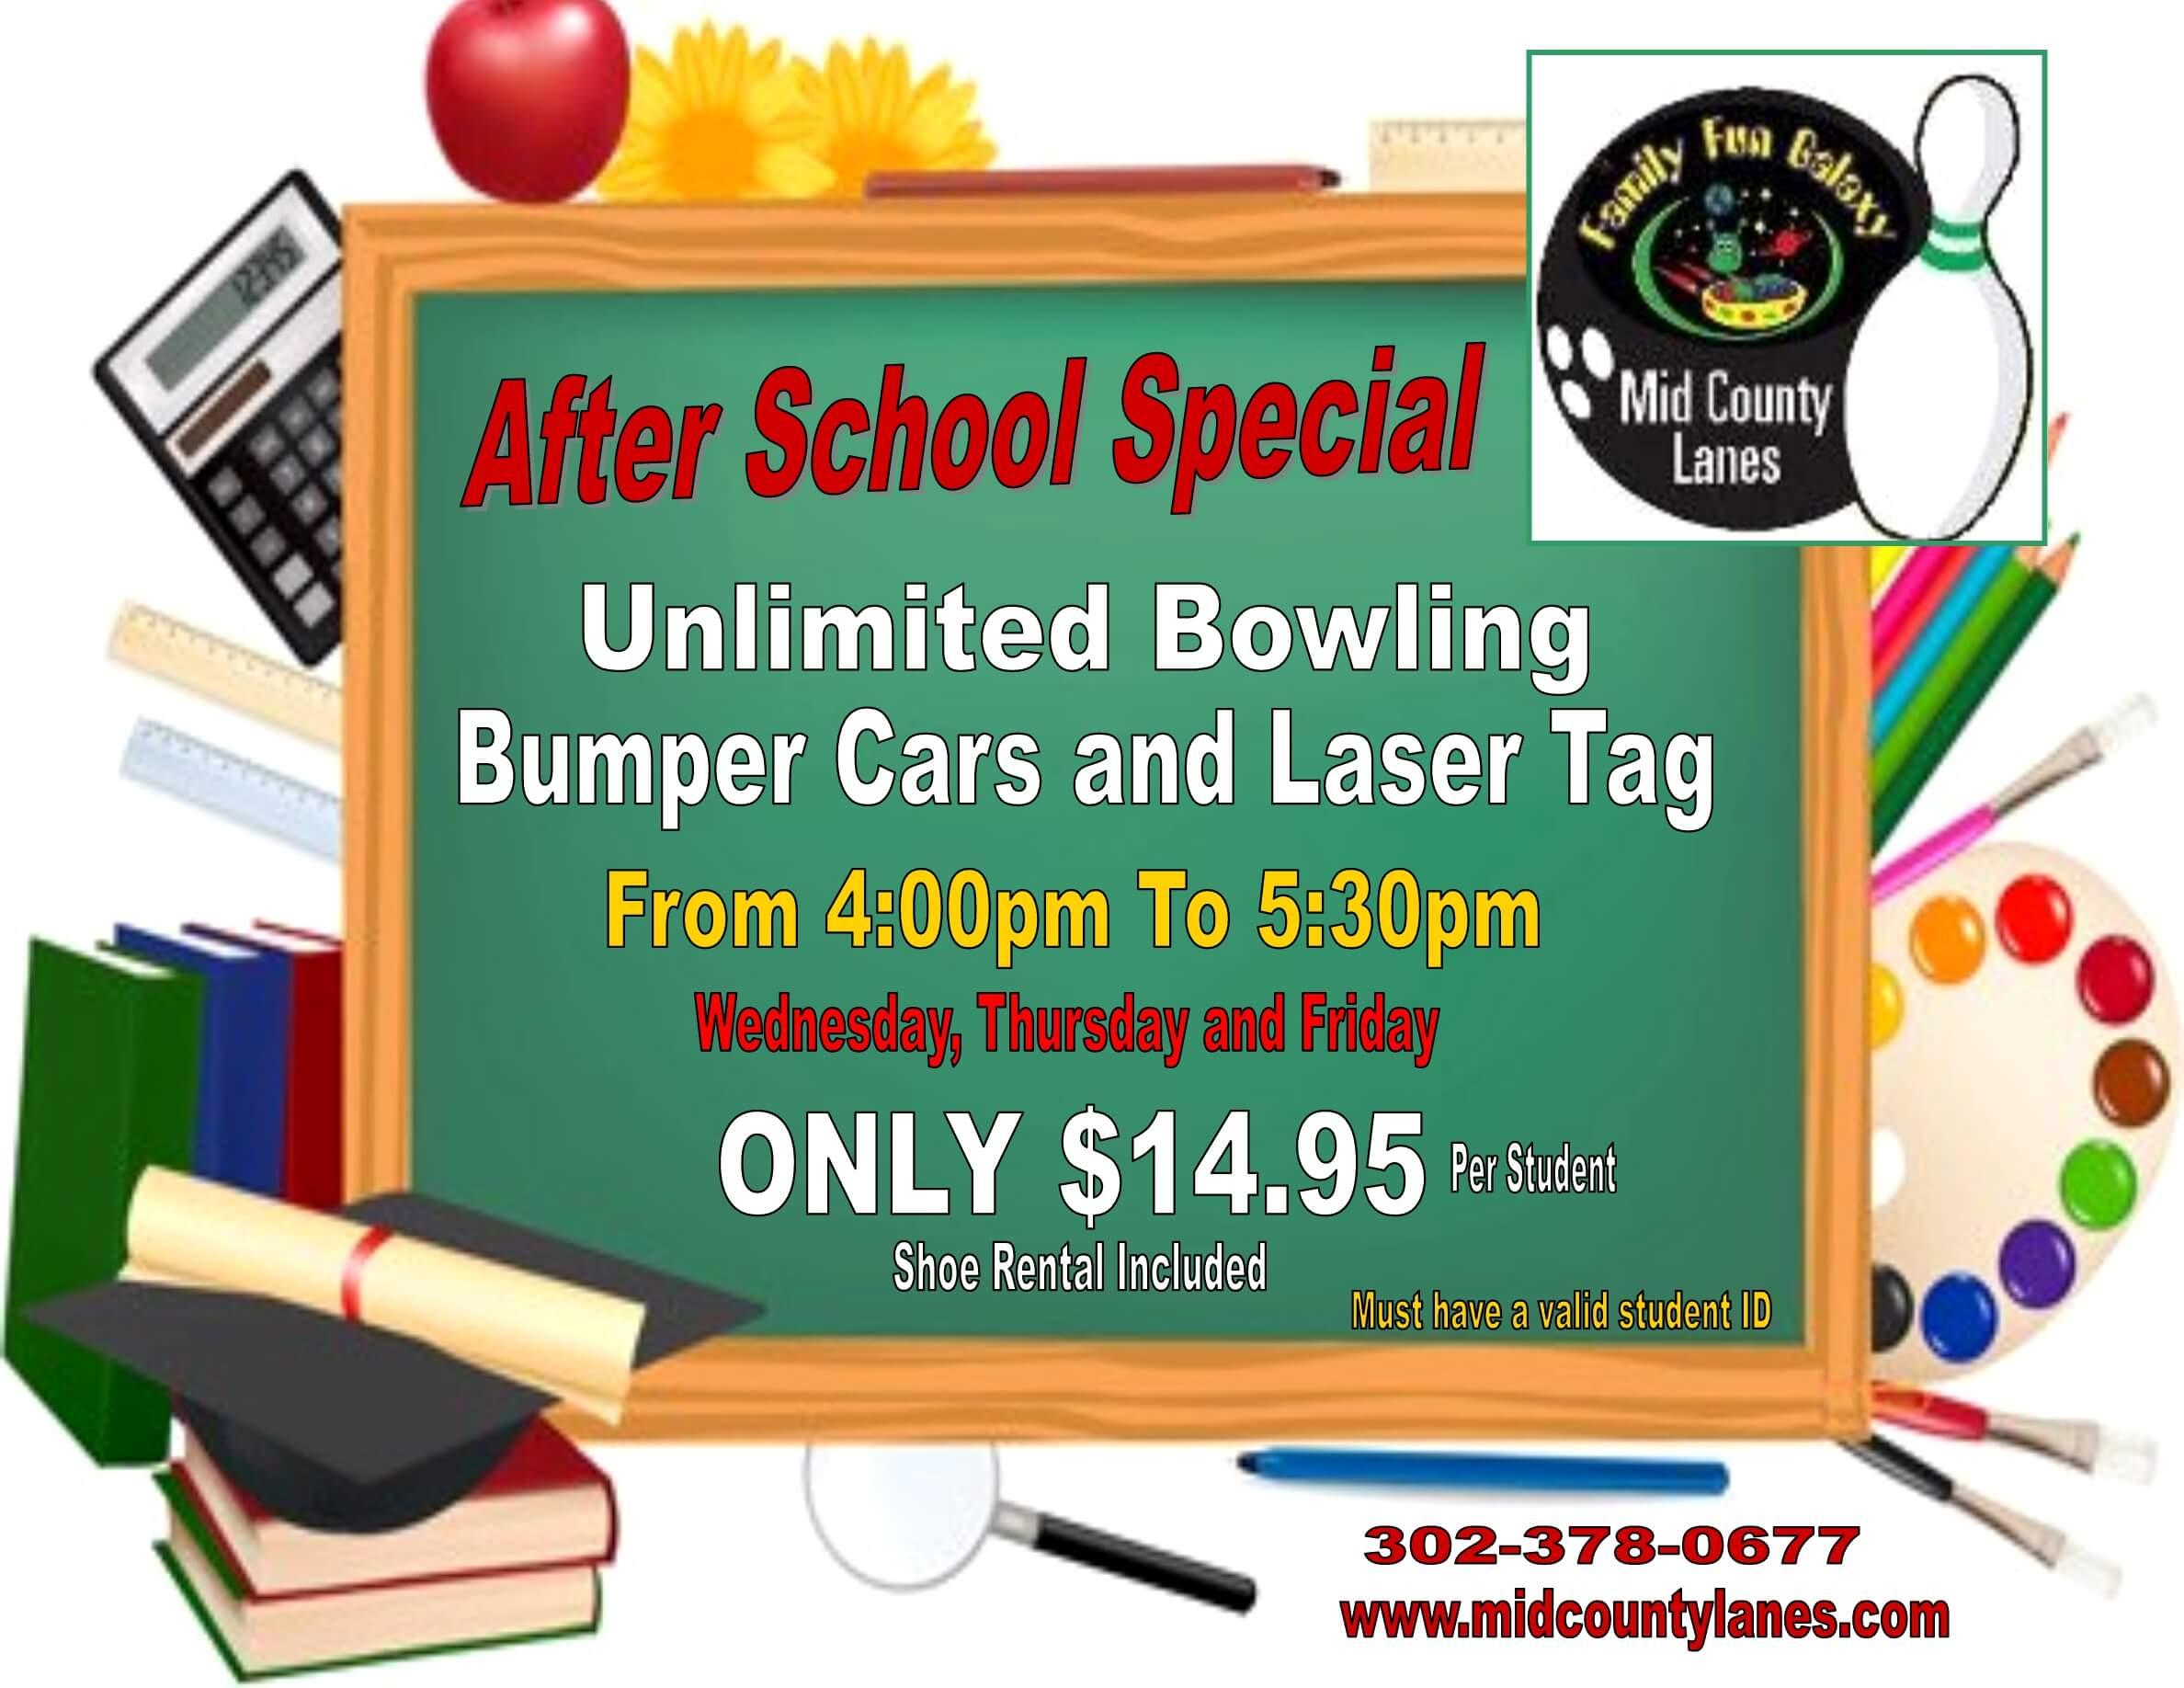 after school9+ bowling special